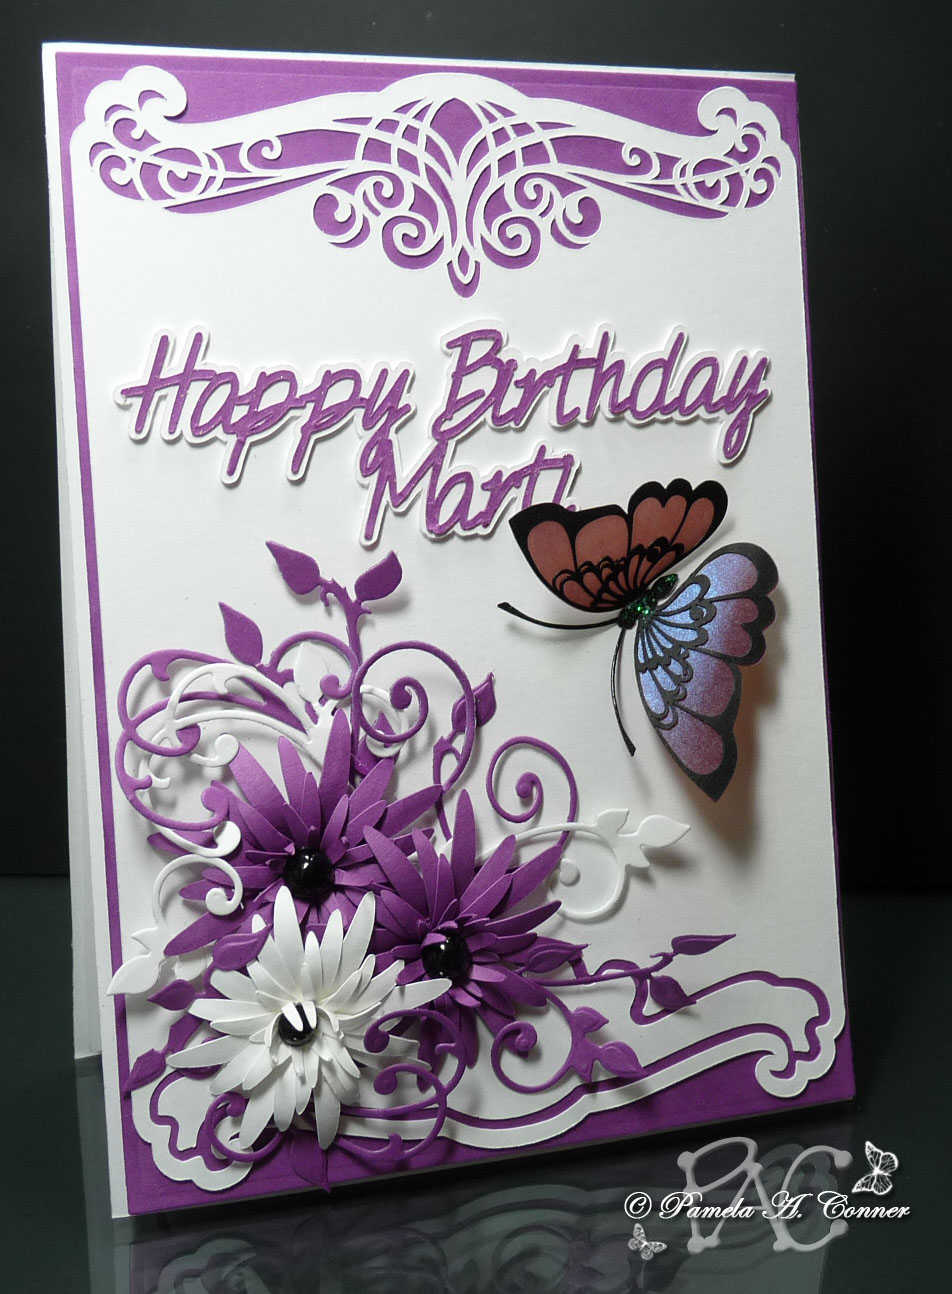 Yorkiemoms creative corner birthday card for marti birthday card for marti kristyandbryce Image collections